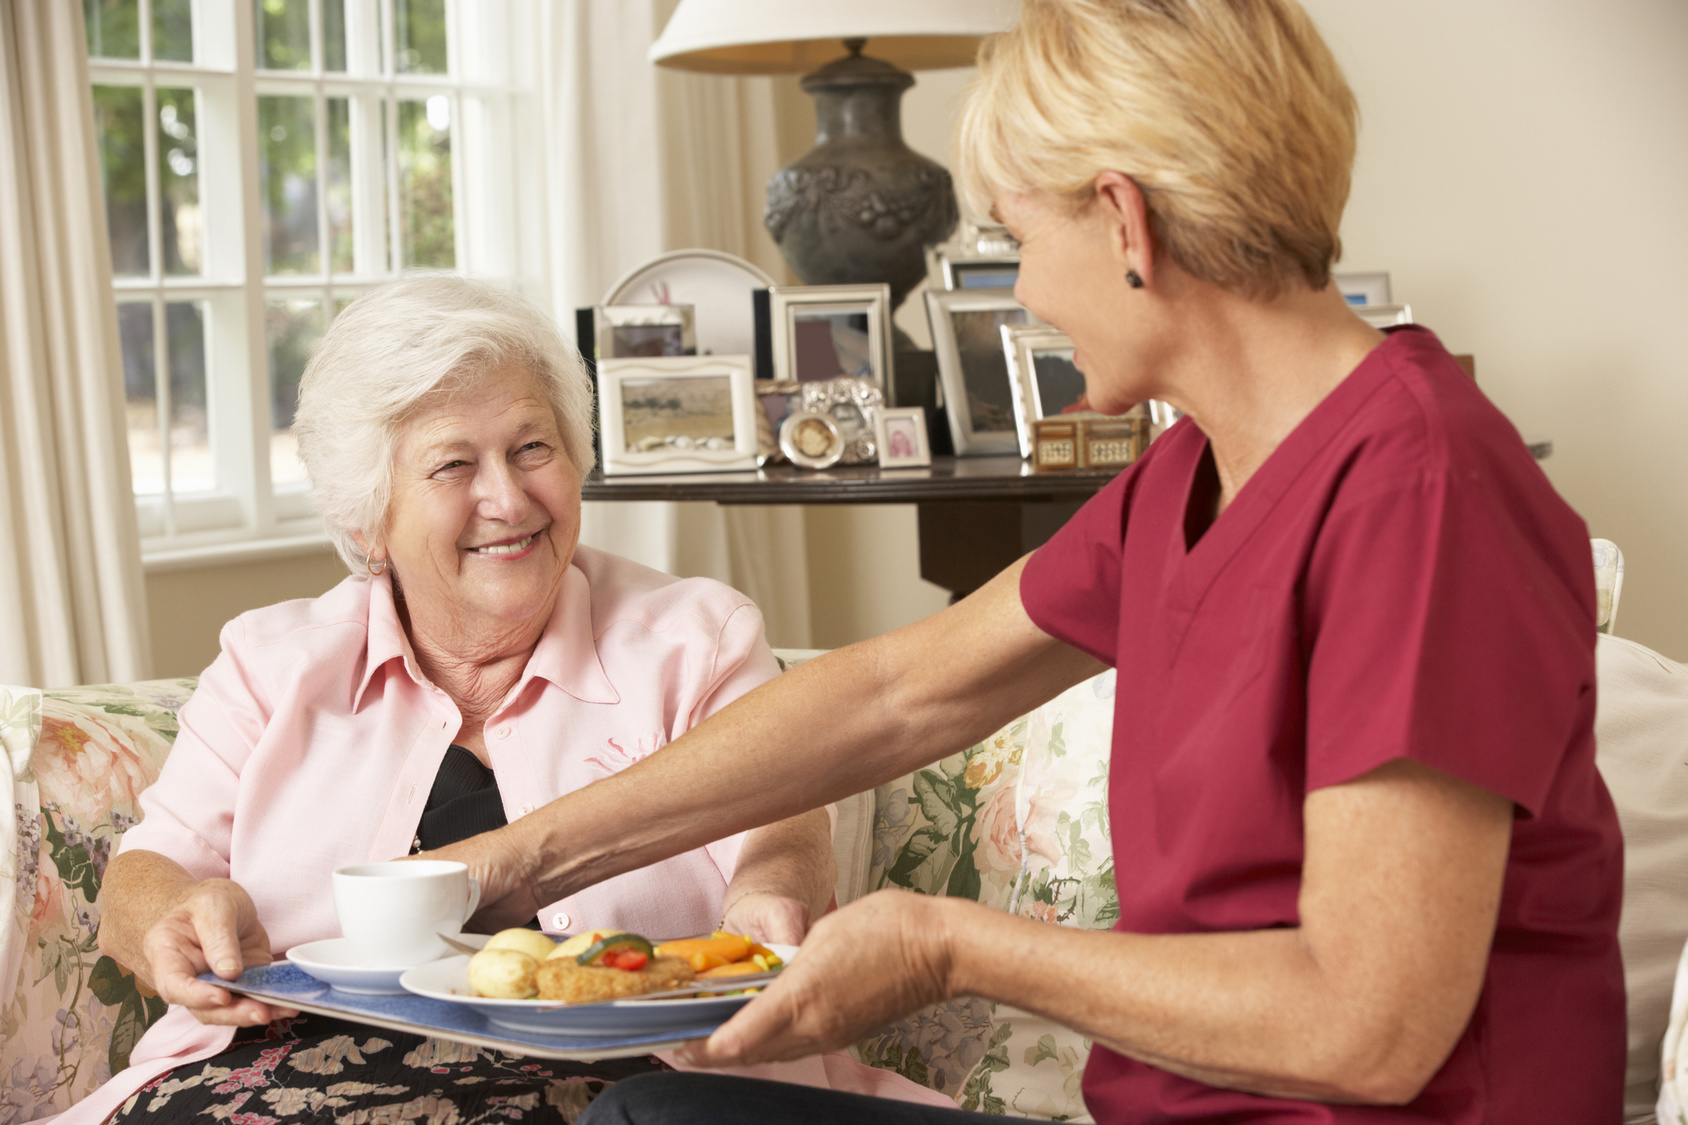 Caregiver-Serving-Food-to-Senior